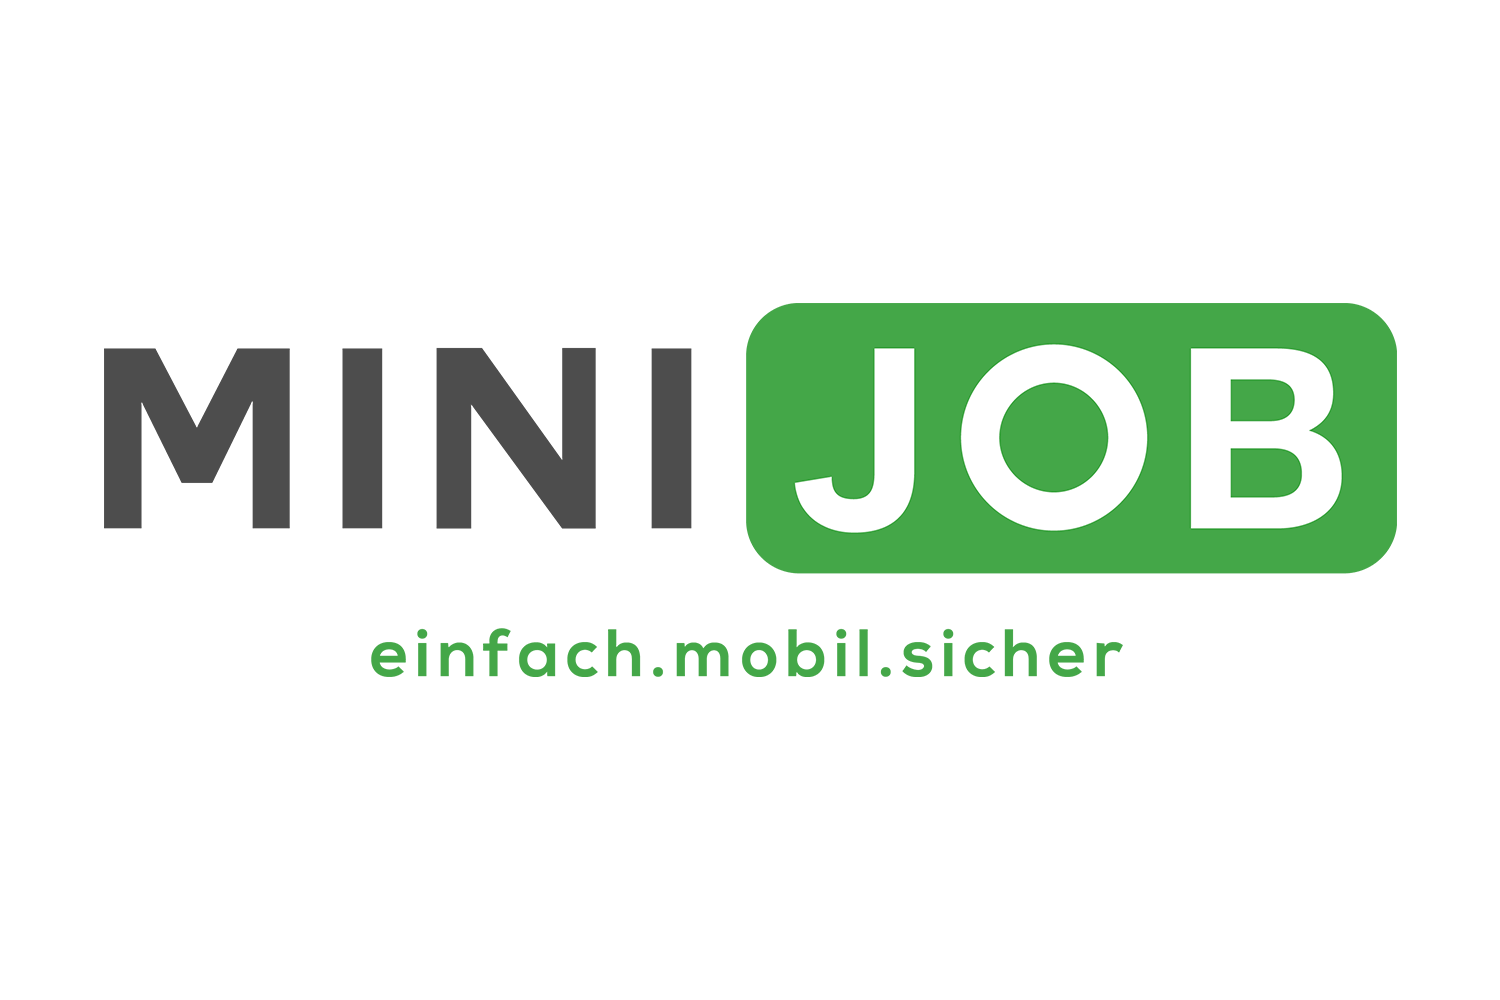 Logo minijob.cloud